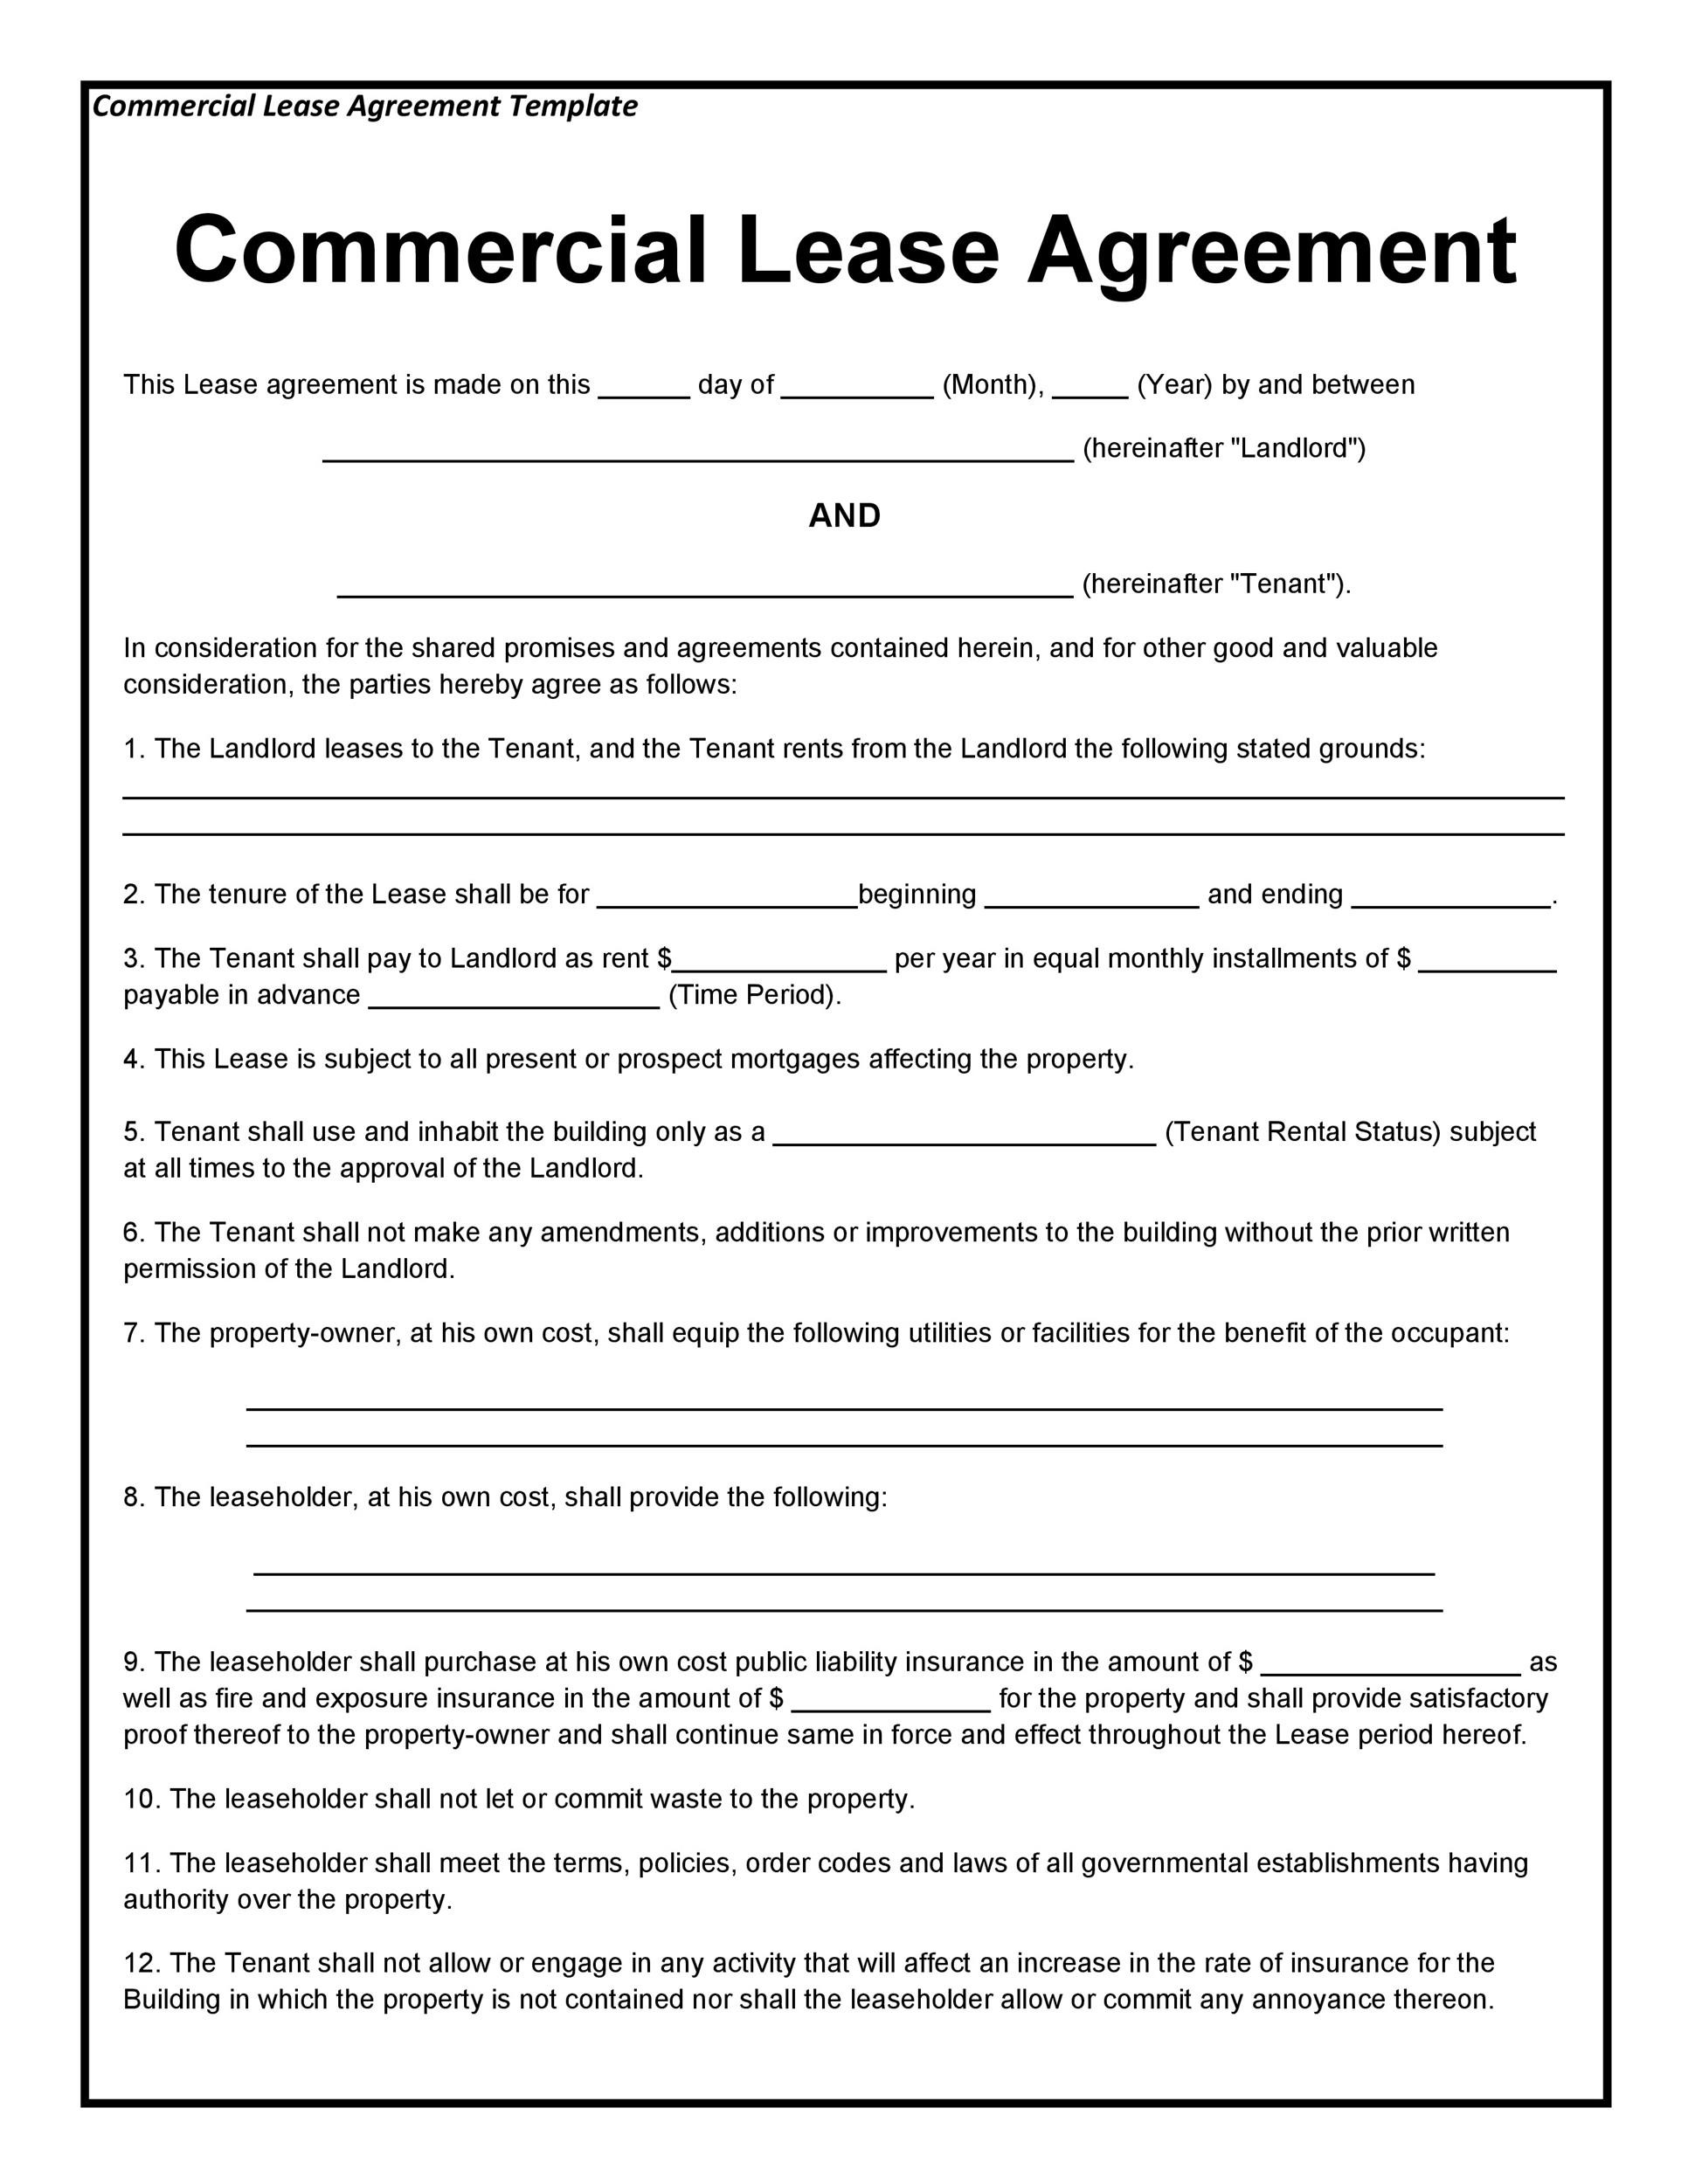 Printable Commercial Lease Agreement Template 04